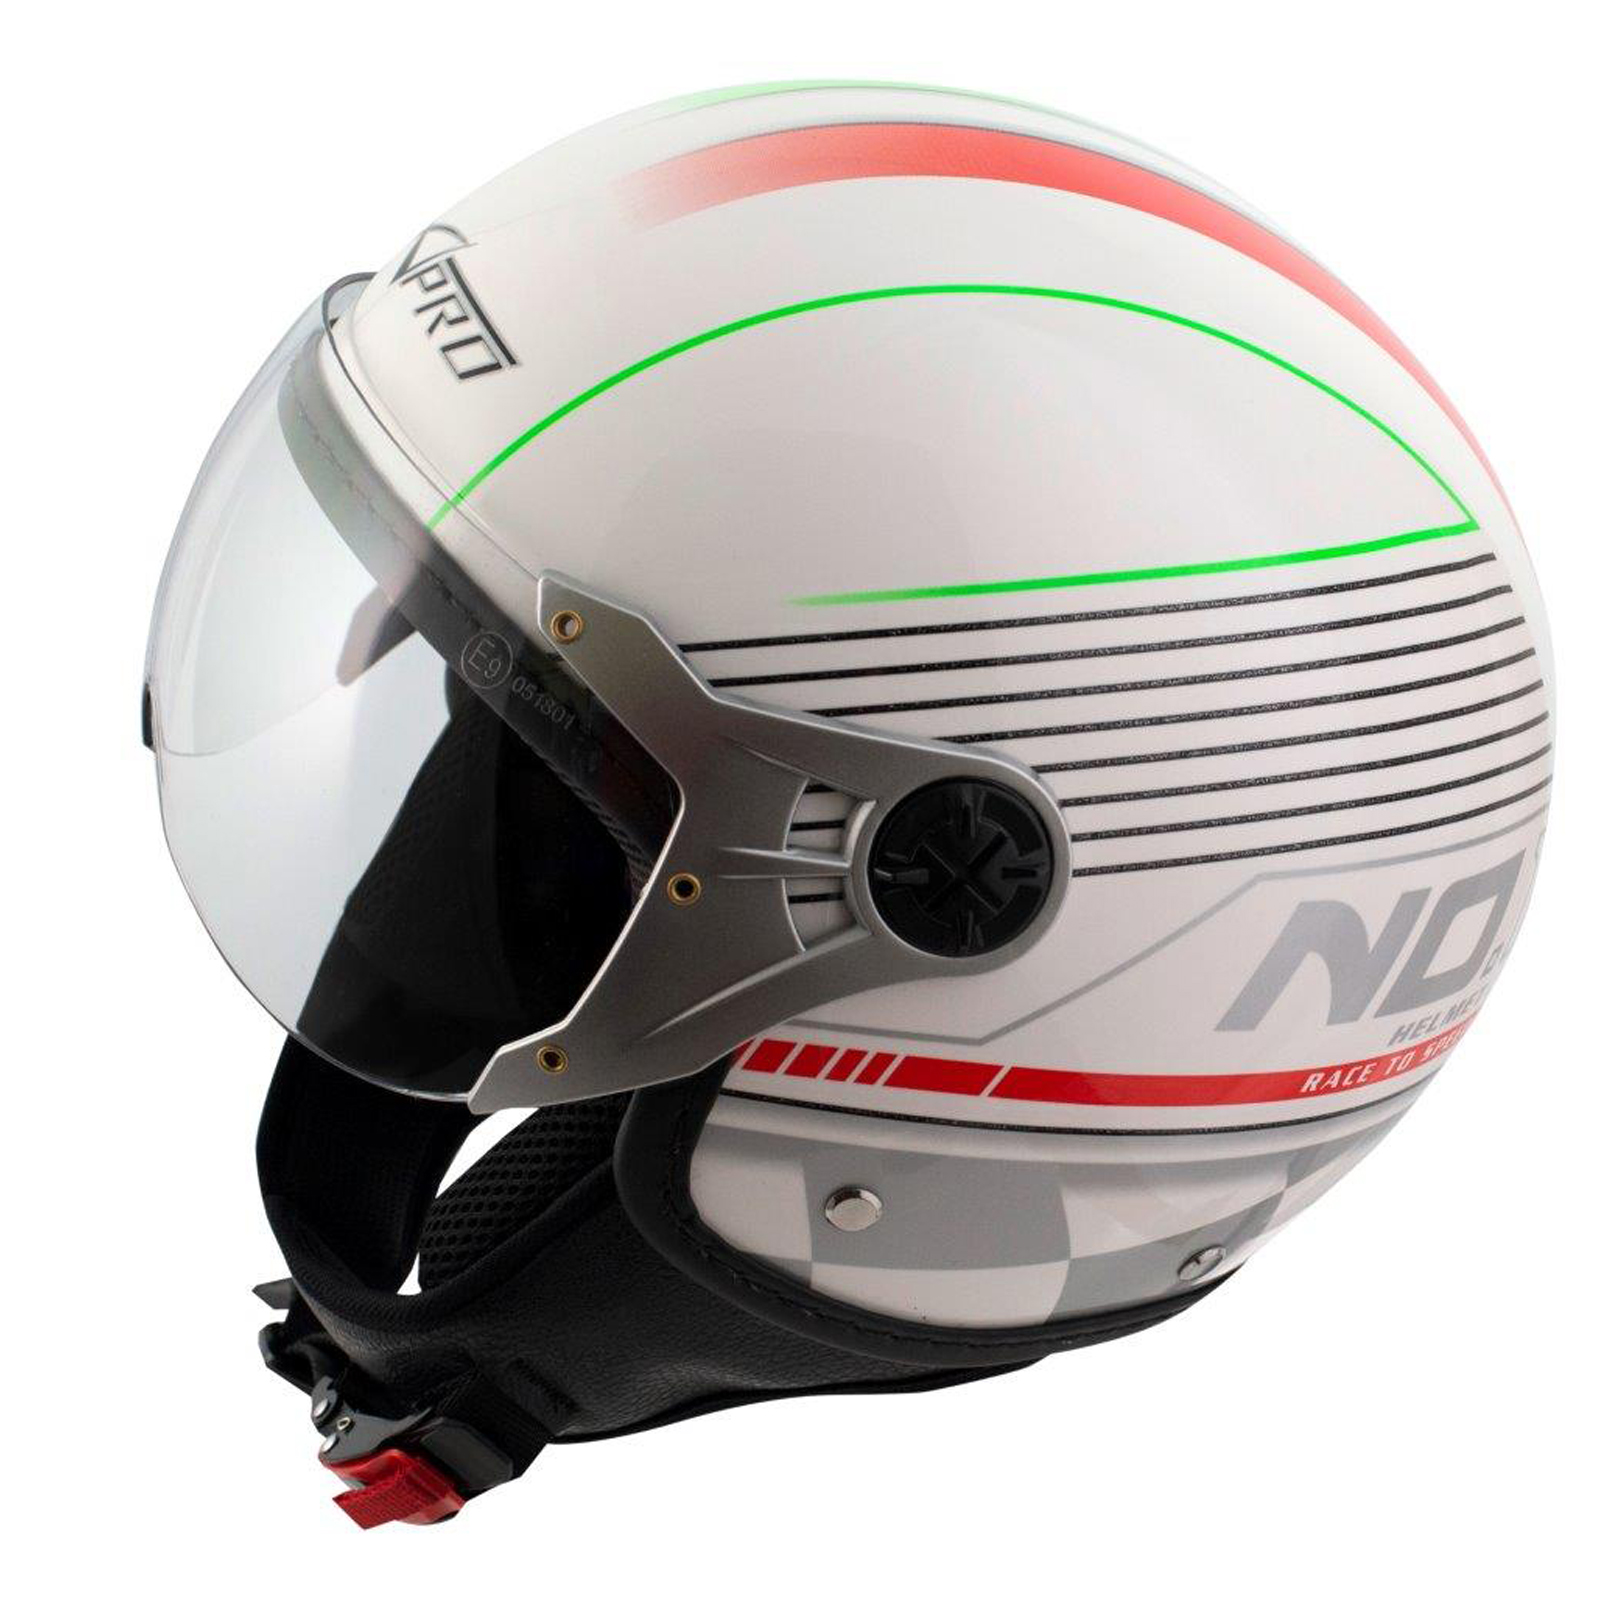 Scooter-Casque-Moto-Ville-Jet-Anti-Scratch-Avio-Visiere-Rouge